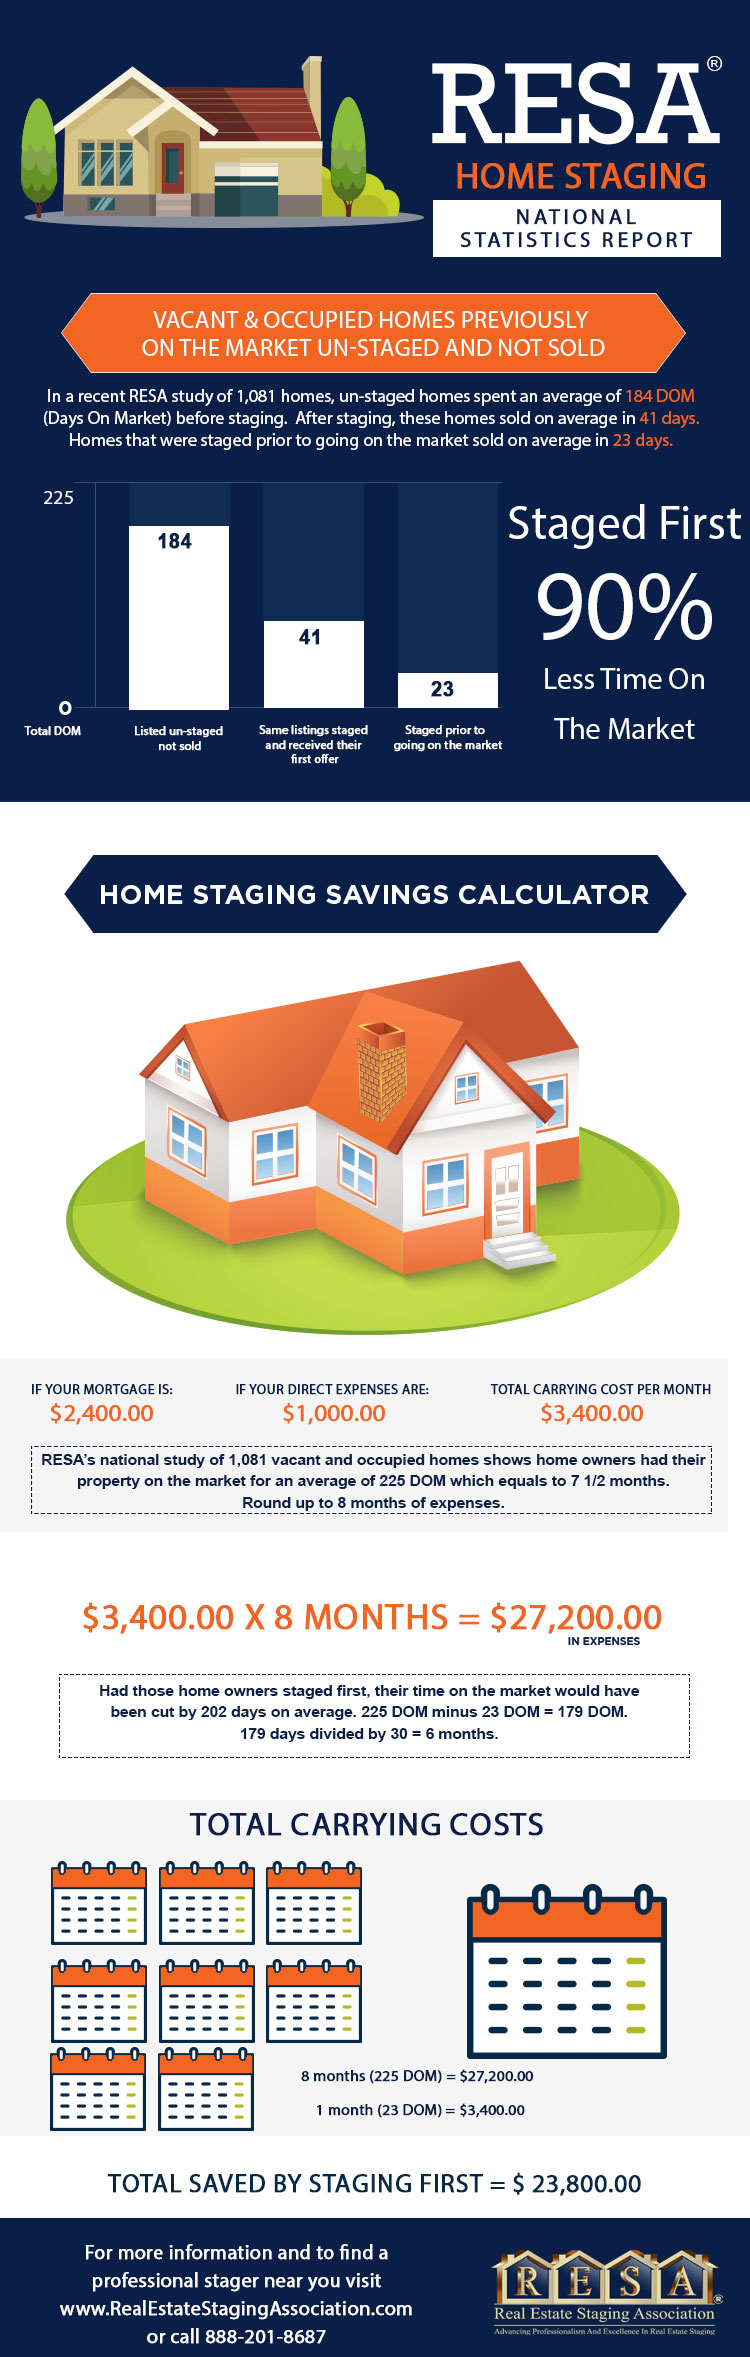 Statistics prove home staging works